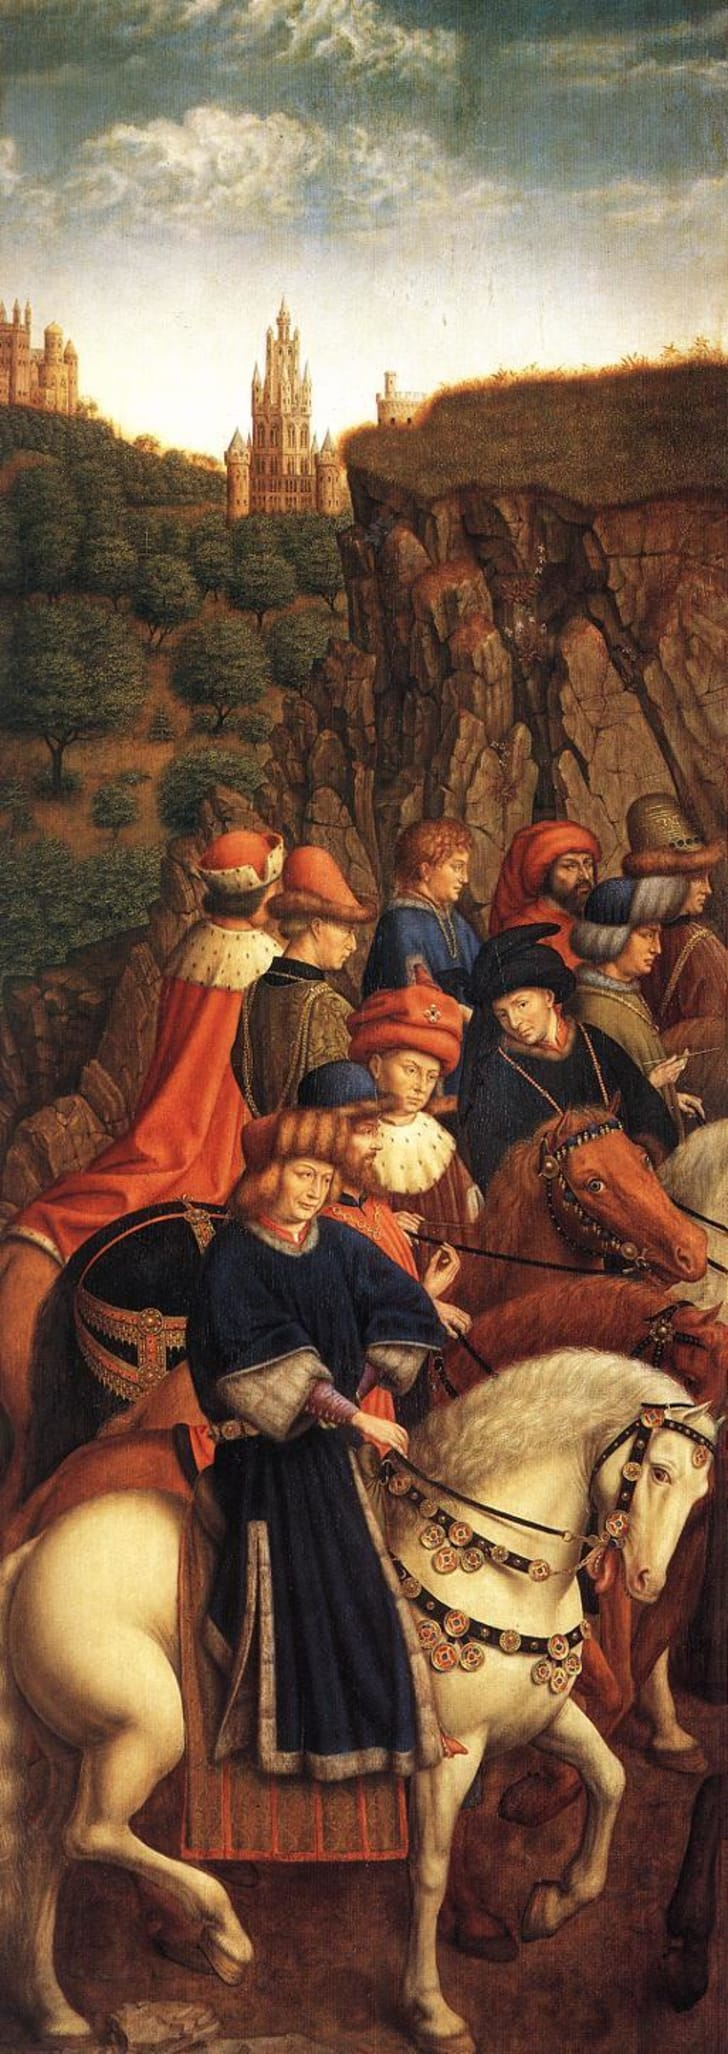 The Just Judges panel of The Ghent Altarpiece